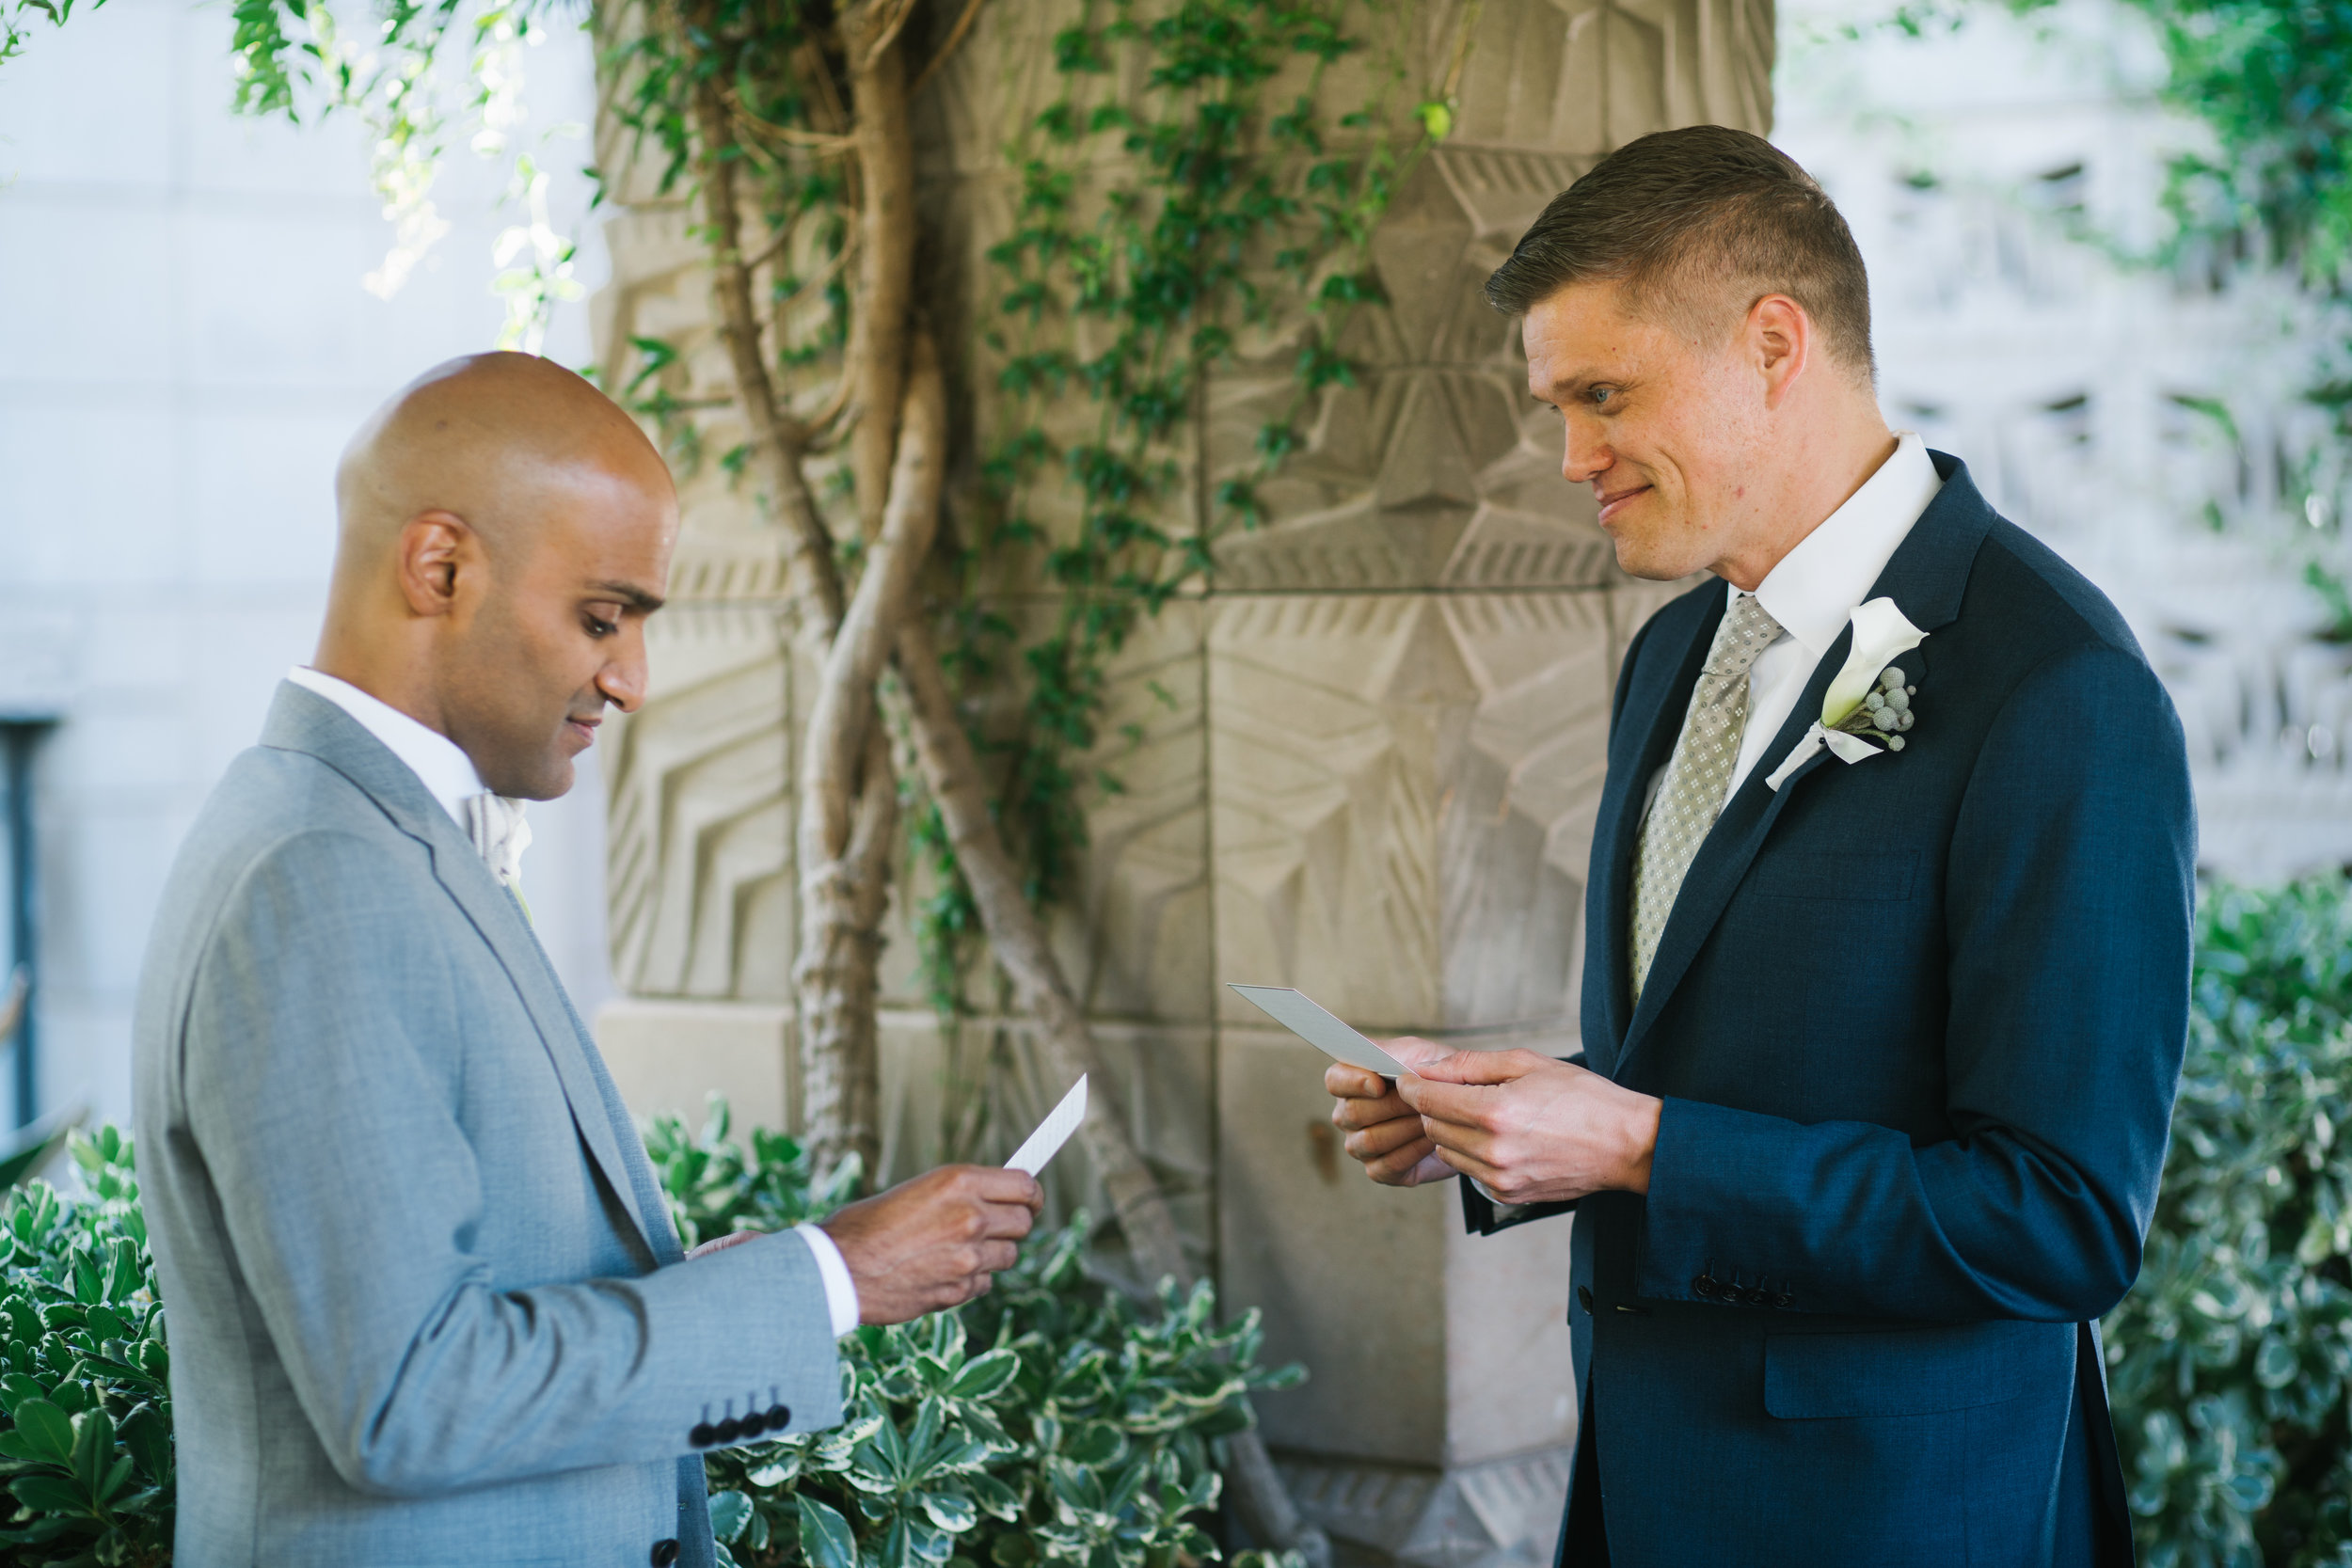 6 couple exchange notes two grooms exchange wedding letters first look photos before ceremony Life Design Events photos by Keith and Melissa Photography.jpg